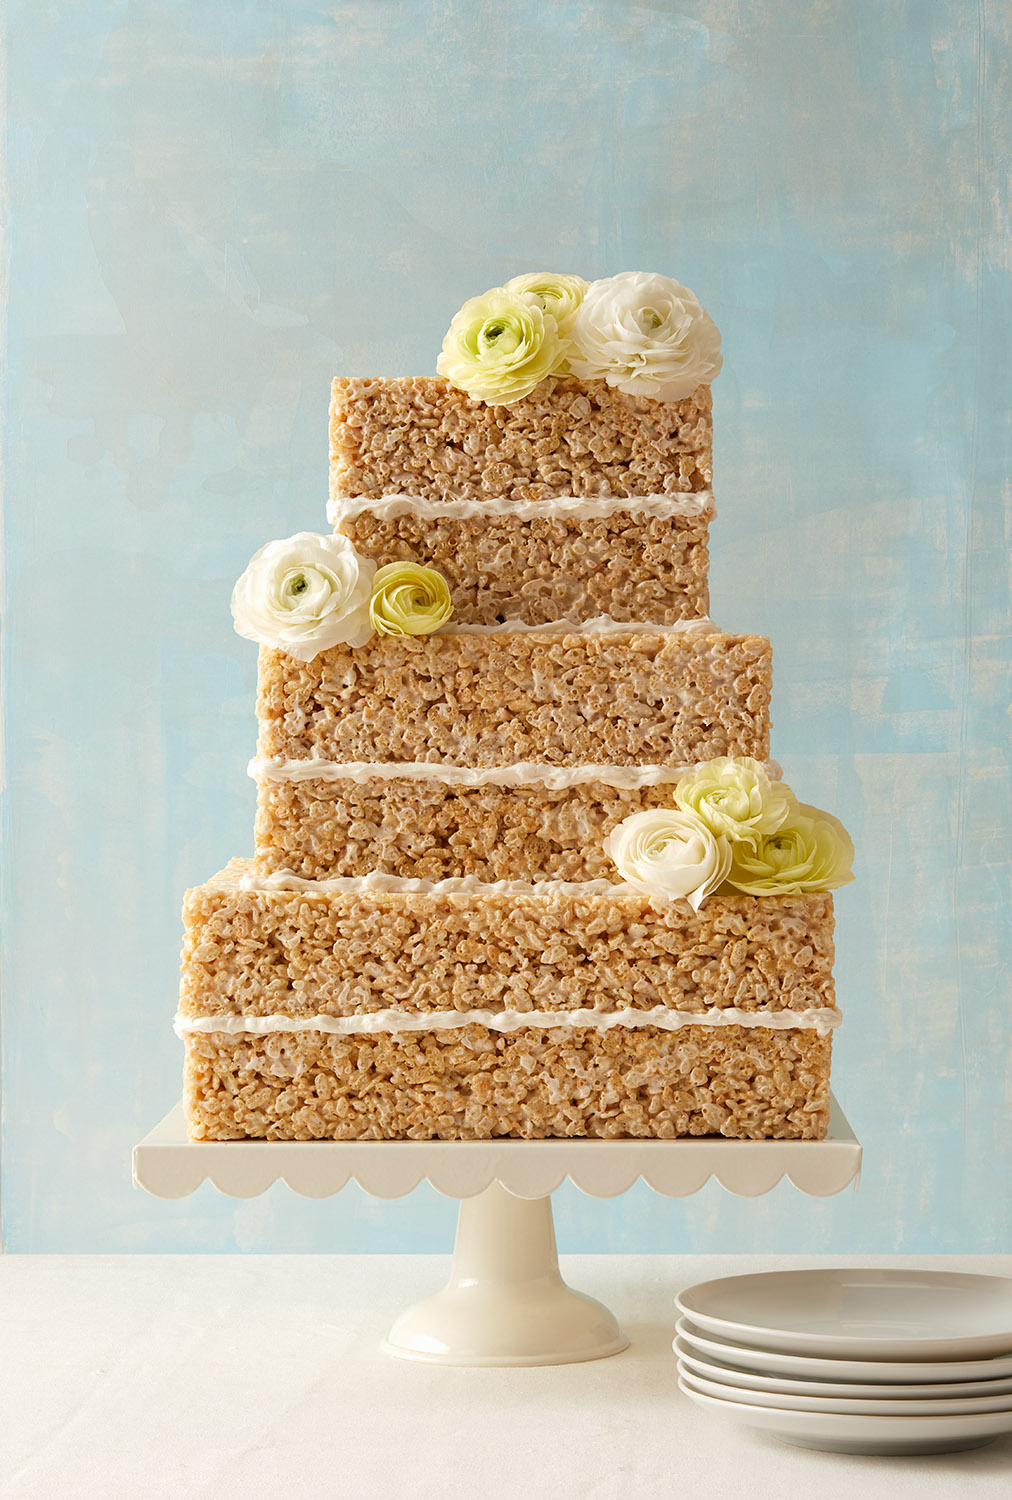 Rice Crispy Treat Cake